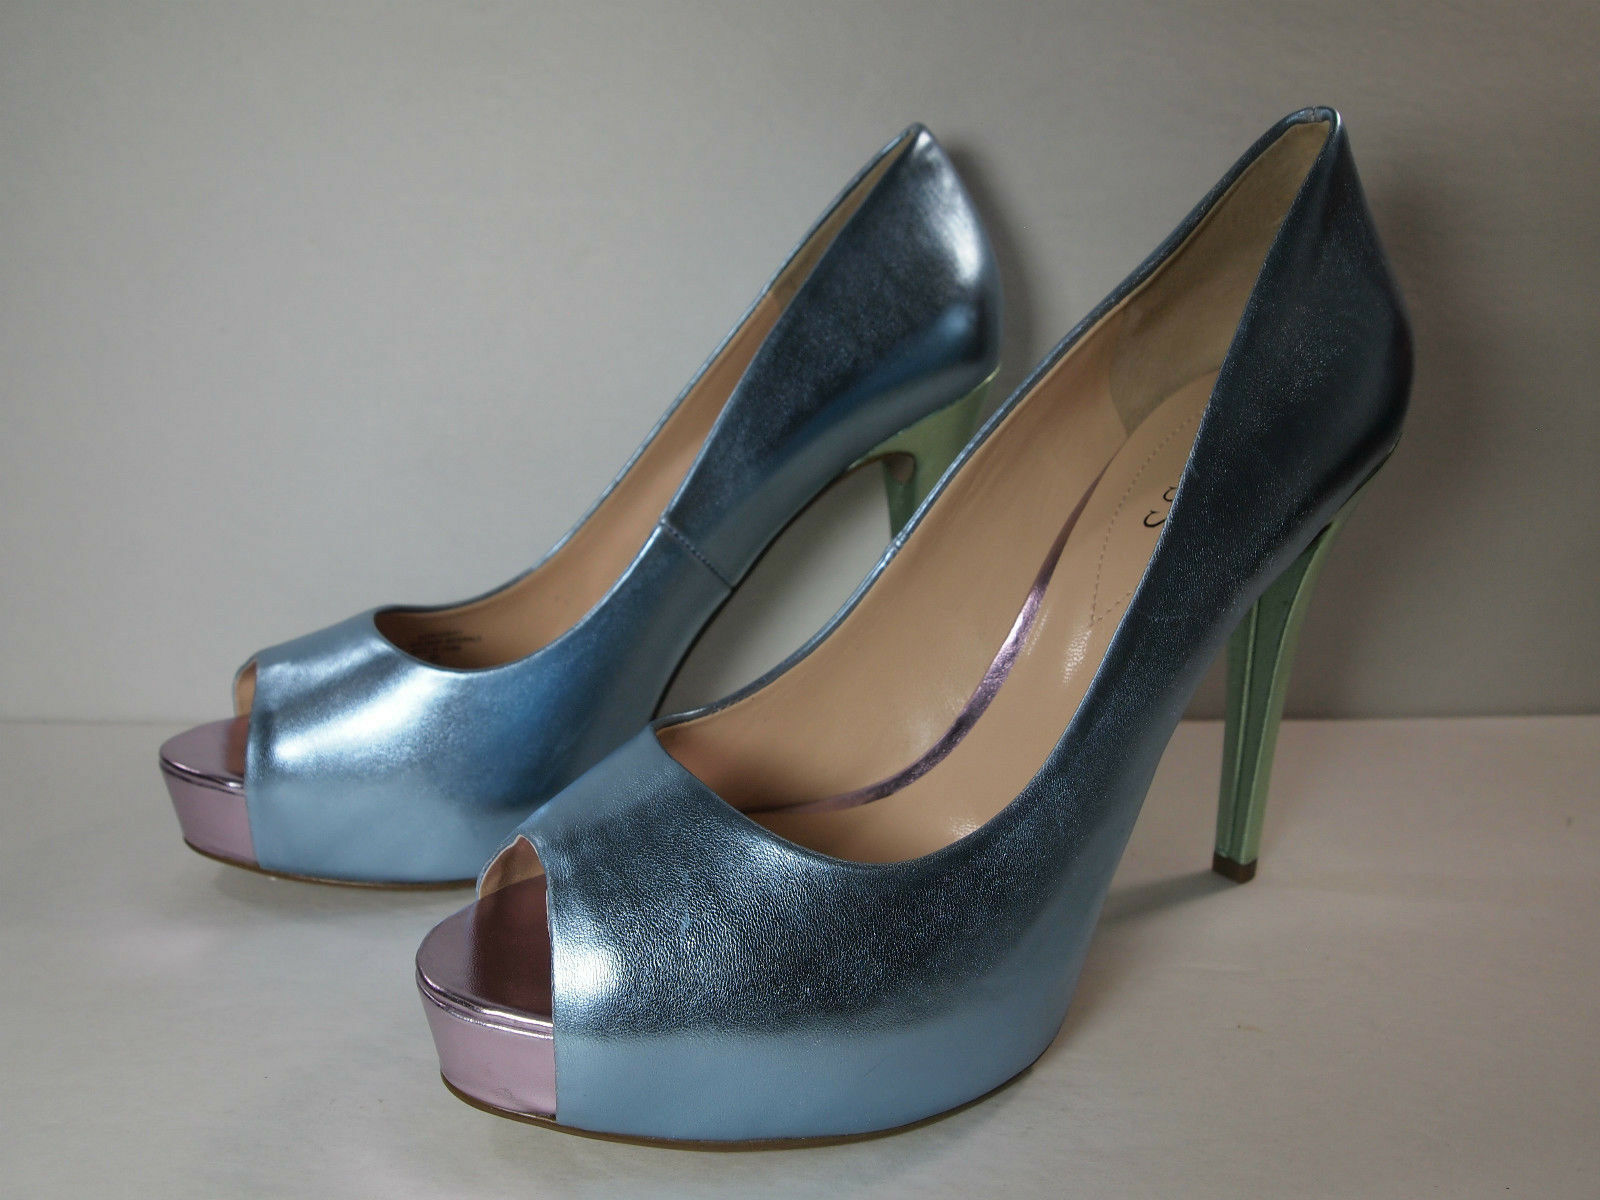 Guess Shiny Blue, Green and Pink Beautiful Peep Toe Heels - Size 9M